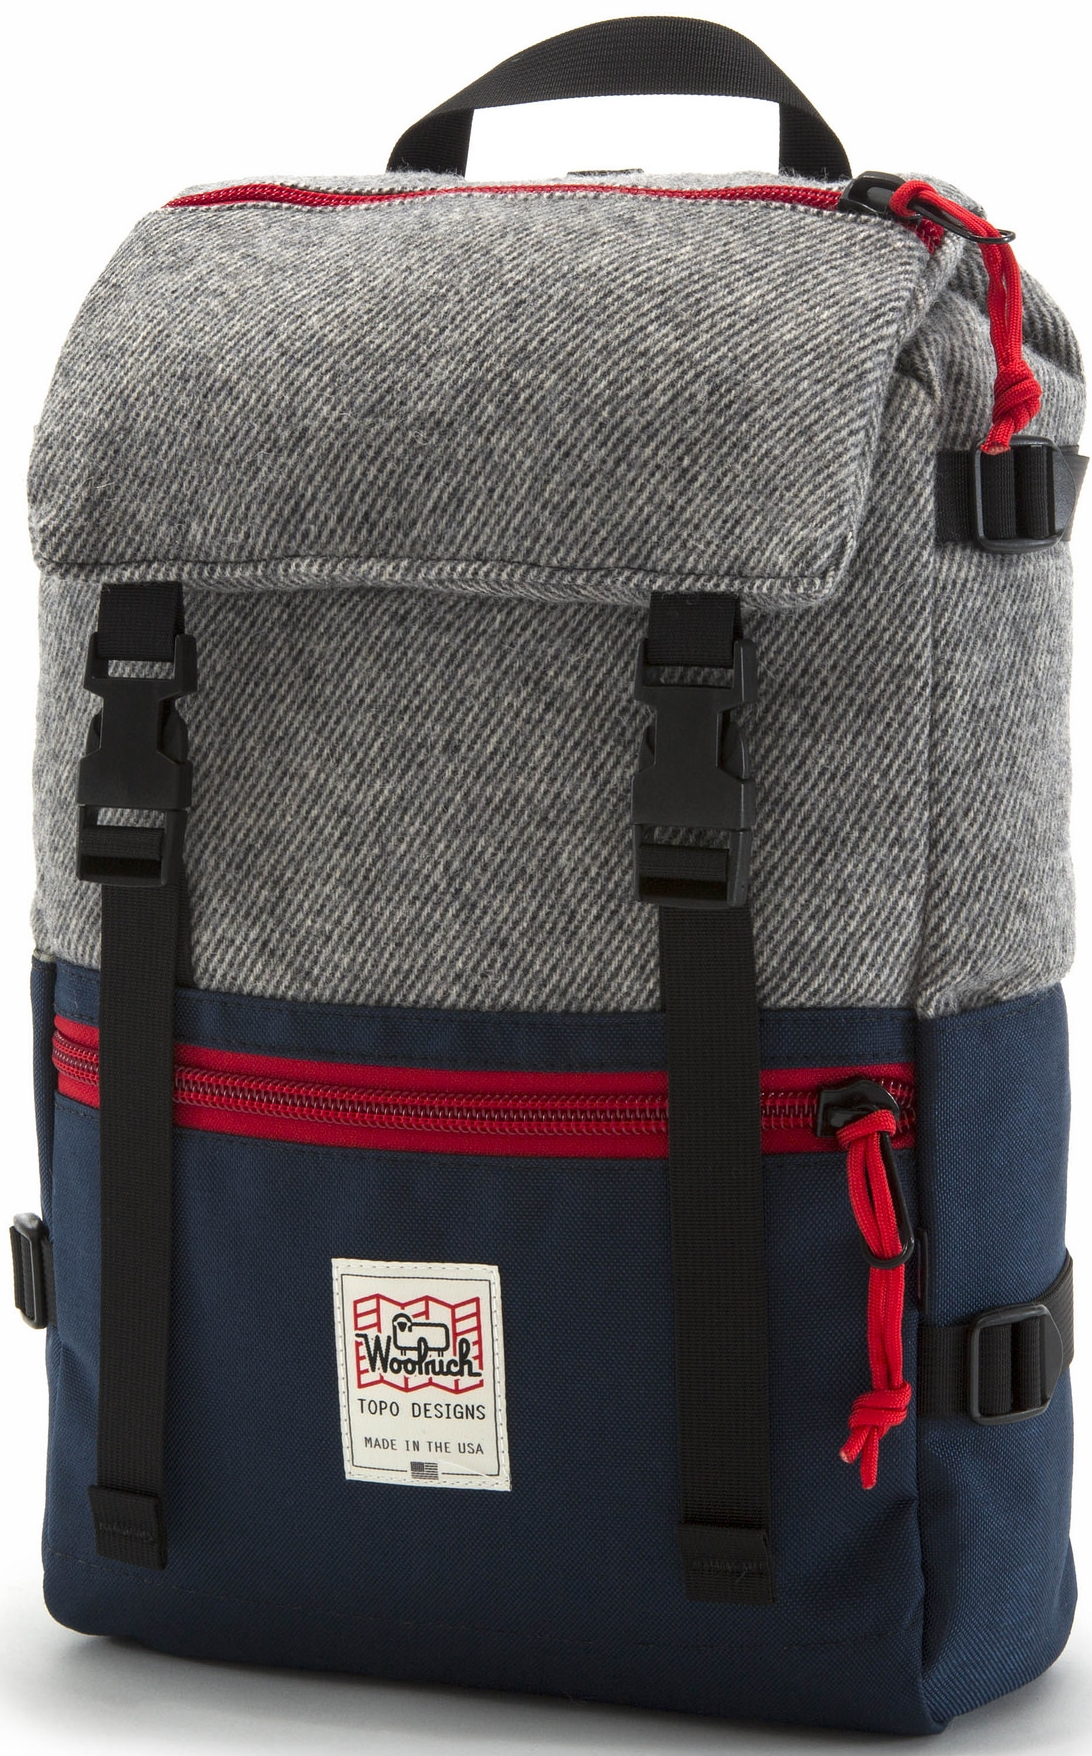 Topo Designs x Woolrich Rover Pack, $200